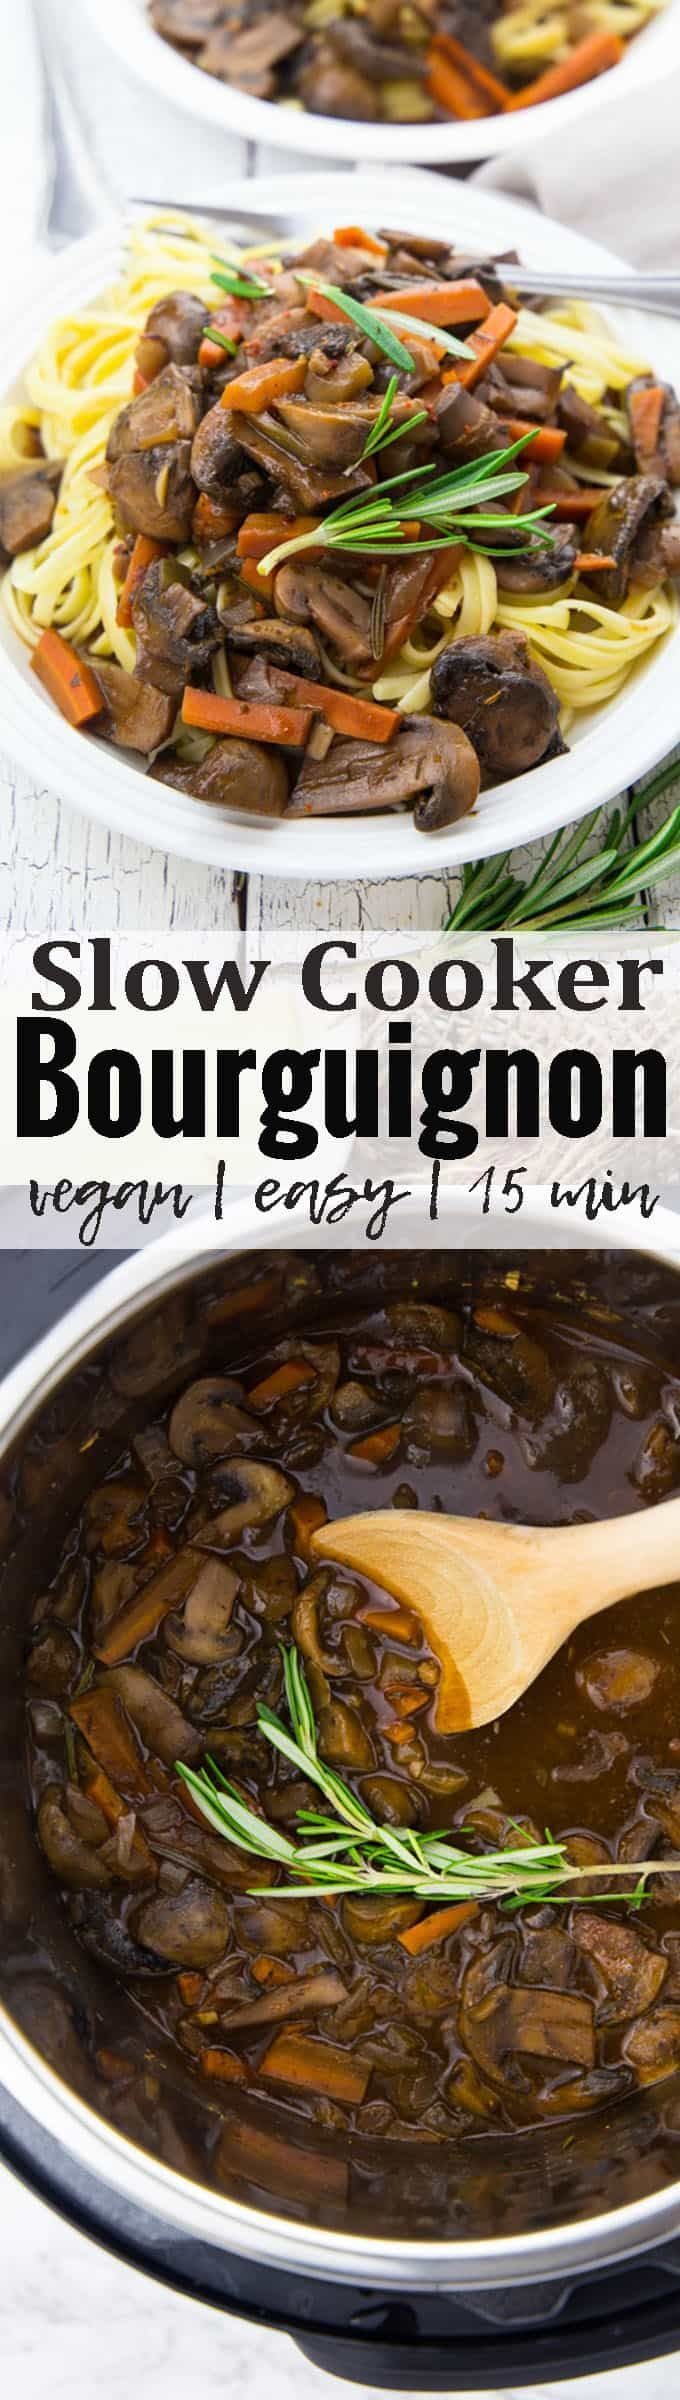 This vegan mushroom bourguignon is the perfect veggie alternative to the traditional French beef stew. For an extra boost of flavor, it's cooked in the slow cooker. It's perfect for your vegan Thanksgiving and Christmas! Find more vegan recipes at veganheaven.org!